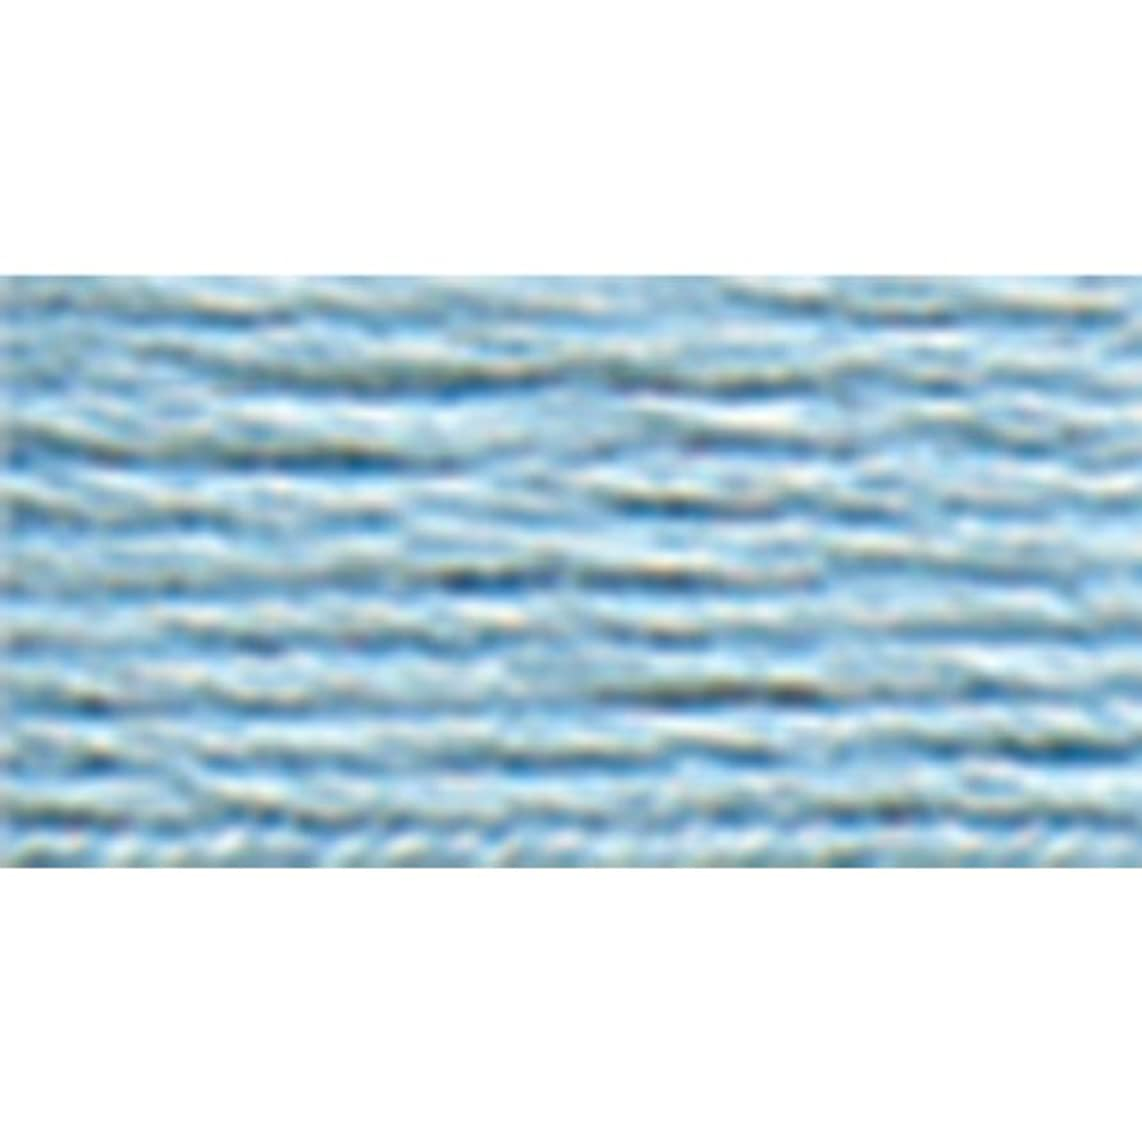 DMC 117-3325 Mouline Stranded Cotton Six Strand Embroidery Floss Thread, Blue, 8.7-Yard